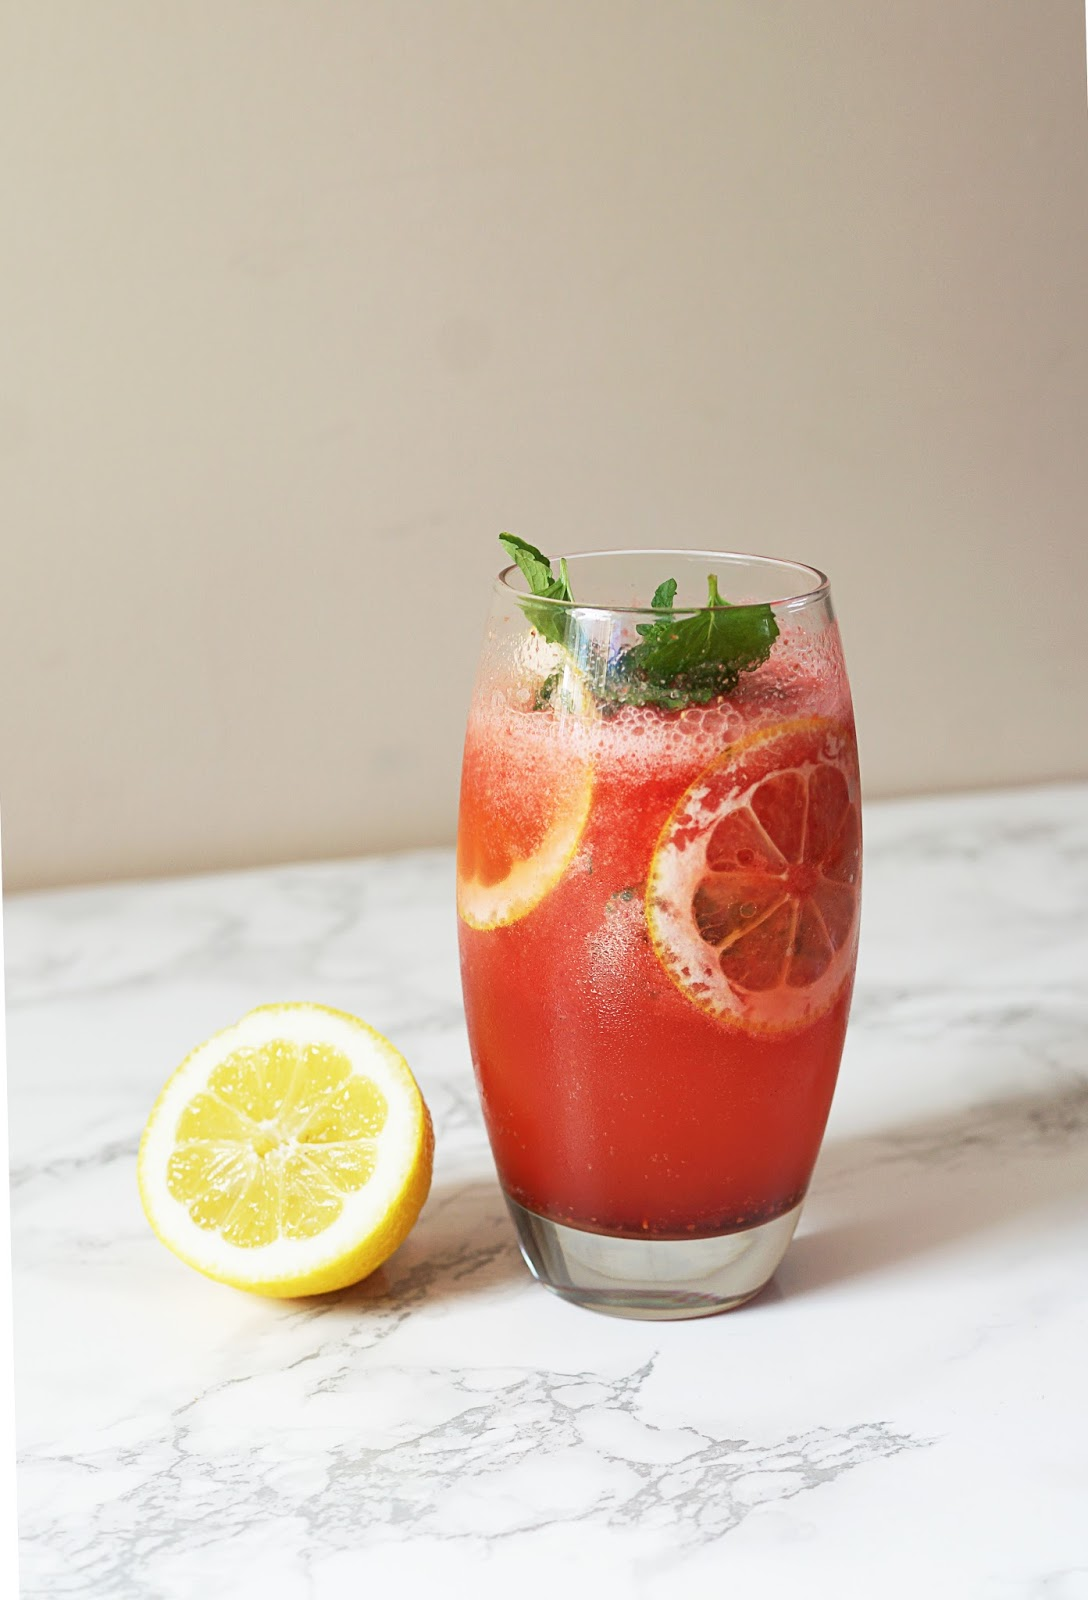 strawberry-mint-cooler-summer-drinks-recipes-non-alcoholic